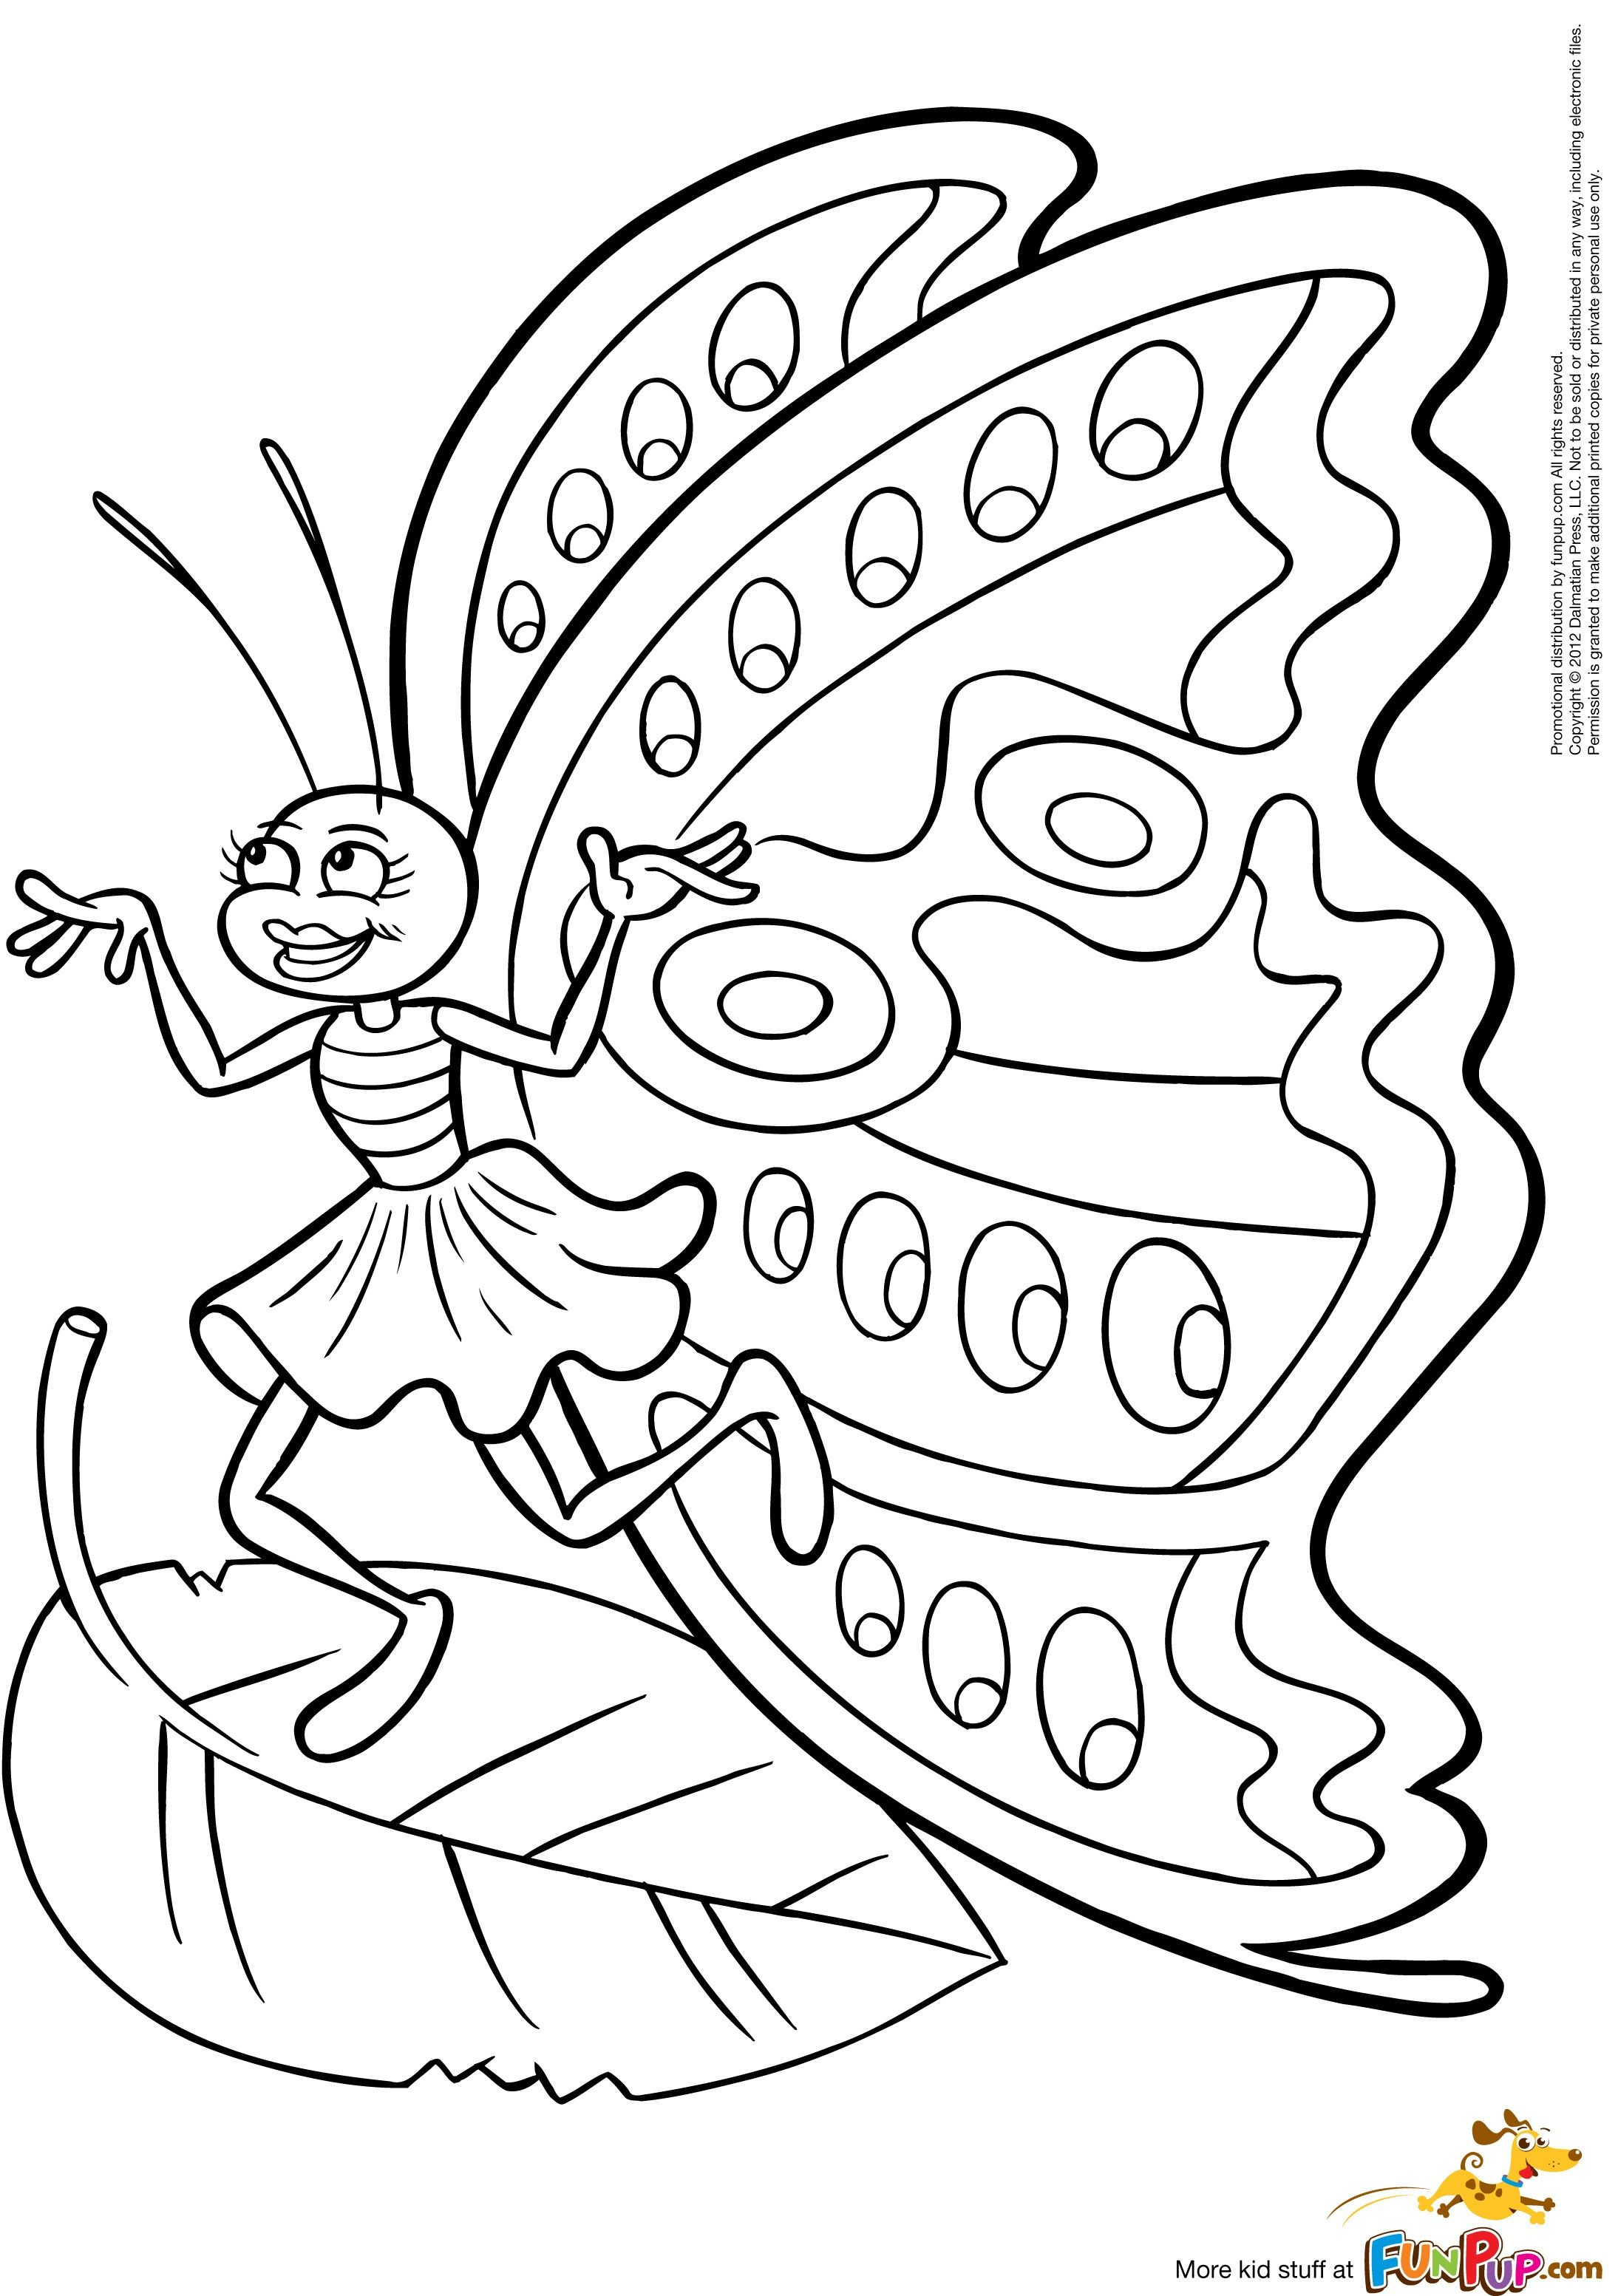 pictures to print and colour for kids wwwbloomscenter pictures for - Pictures To Print And Colour